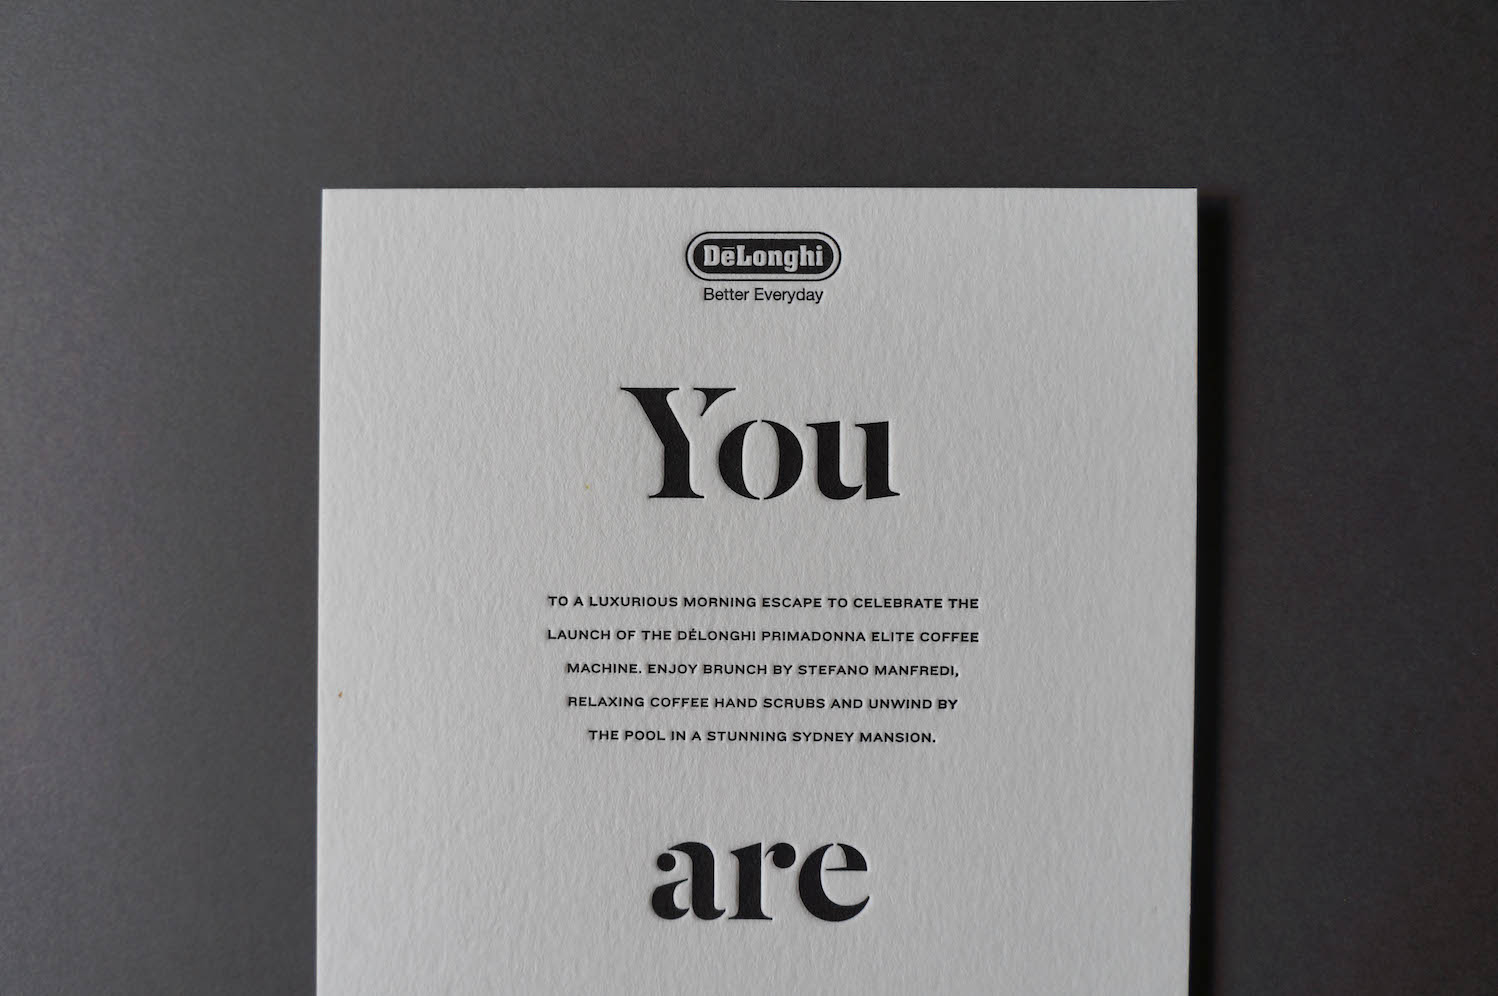 Delonghi Invitations Crafted By D D Letterpress